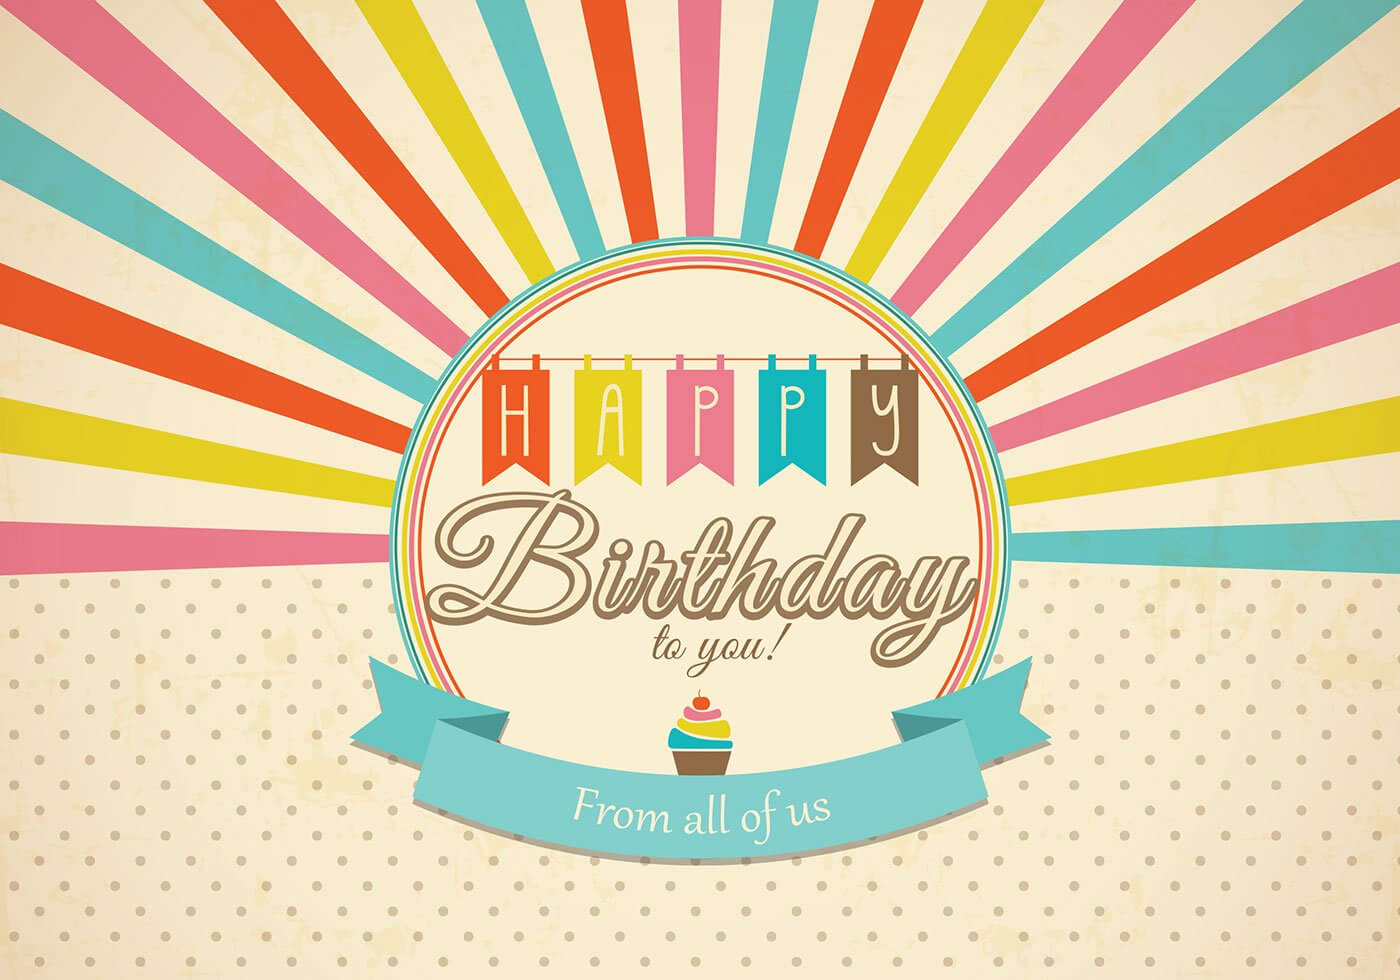 Retro Happy Birthday Card Psd - Free Photoshop Brushes At Within Photoshop Birthday Card Template Free